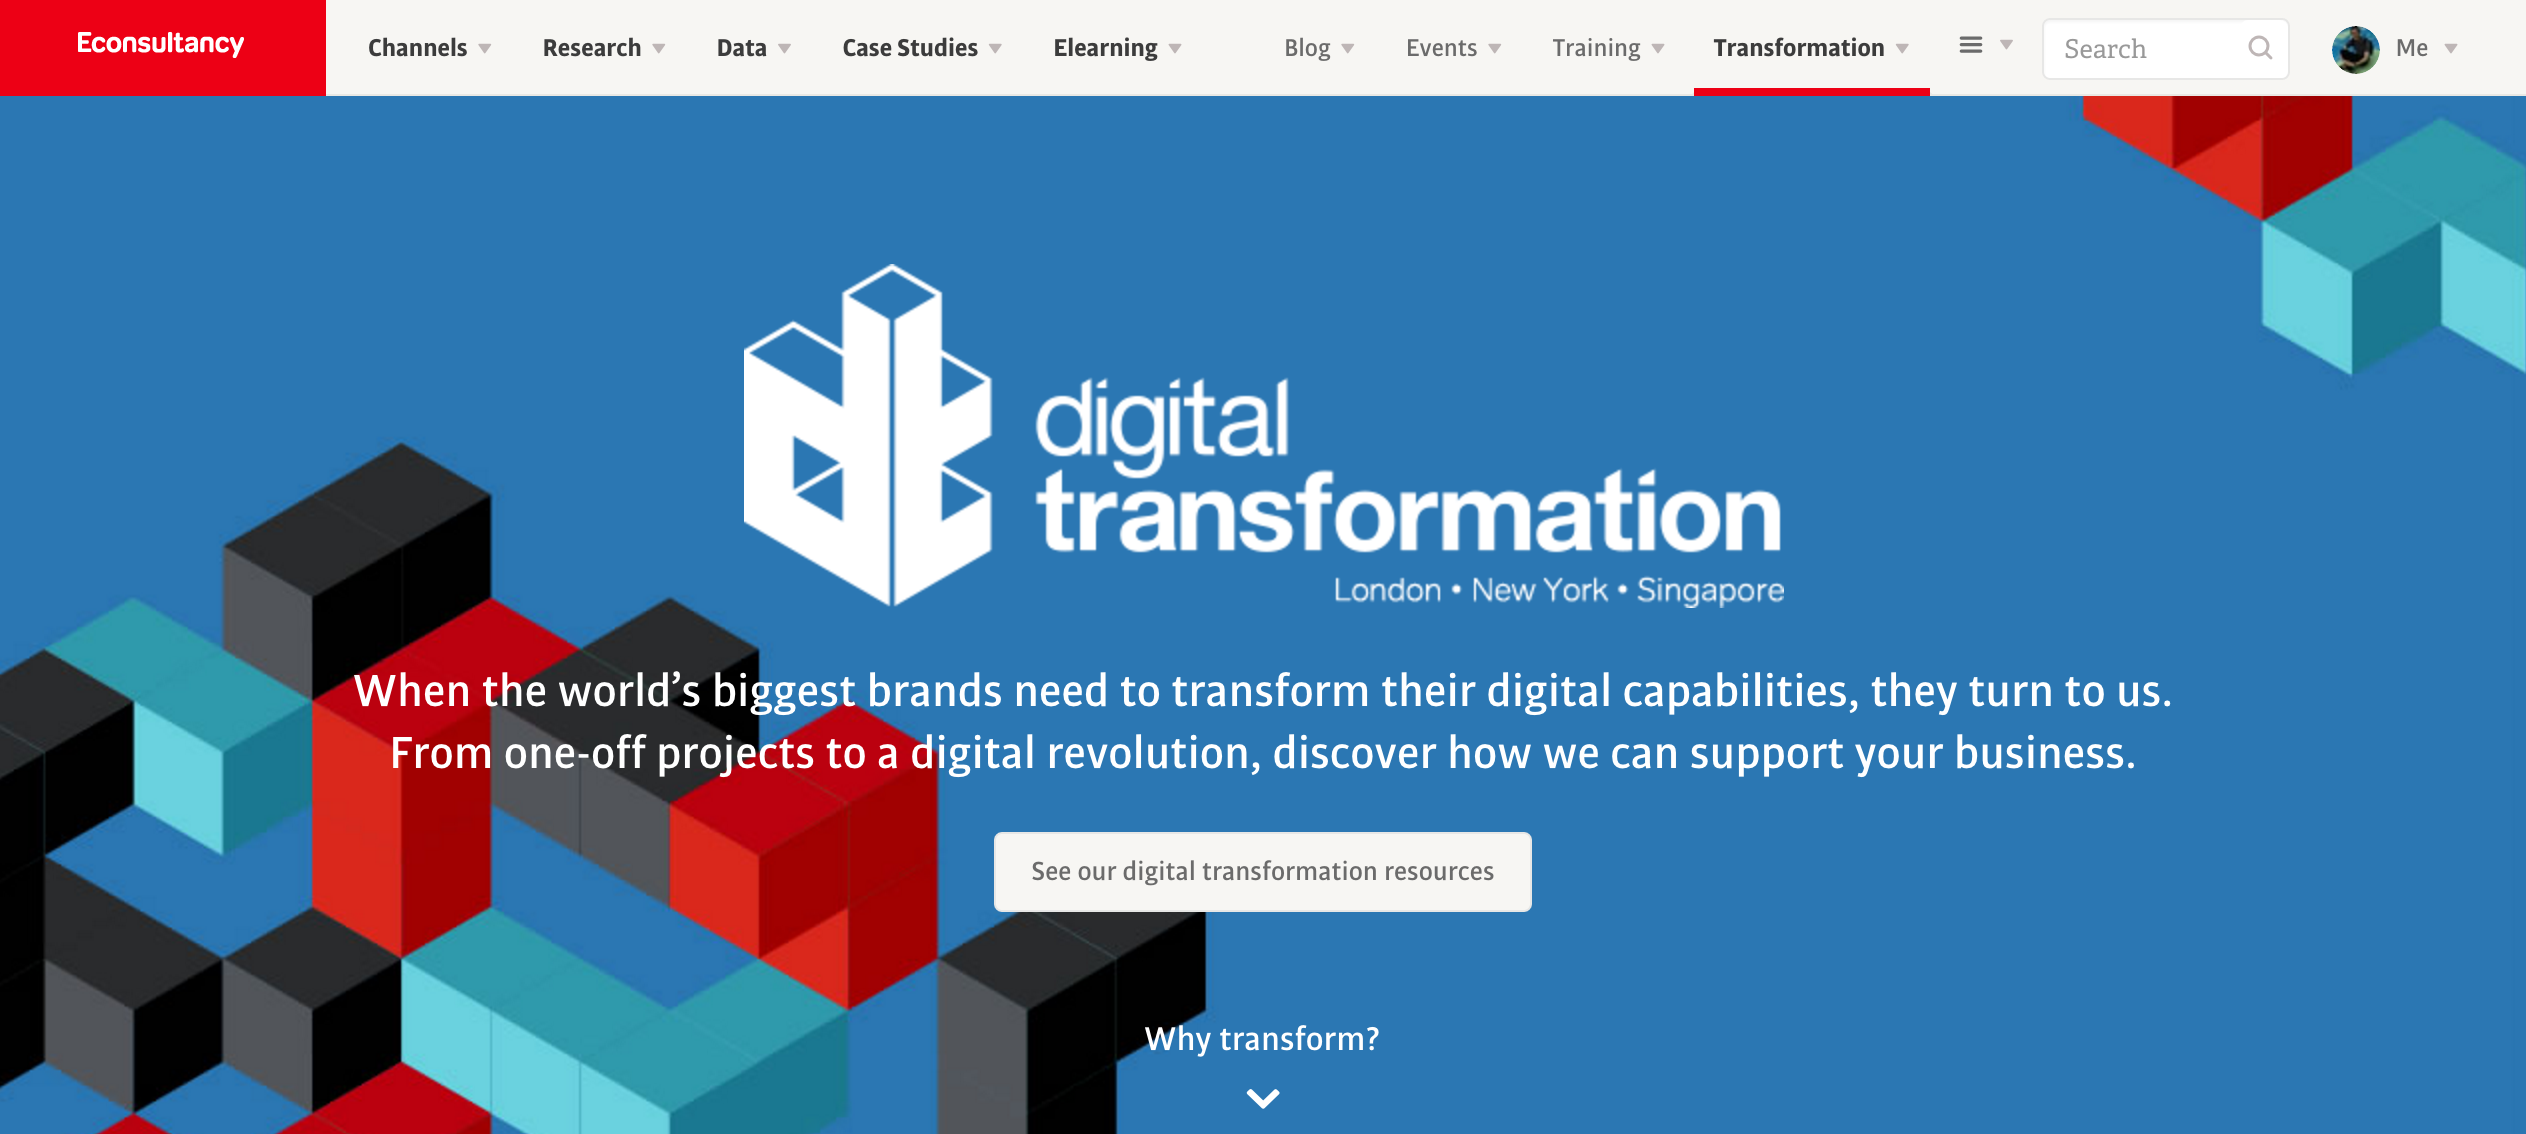 econsultancy digital transformation page